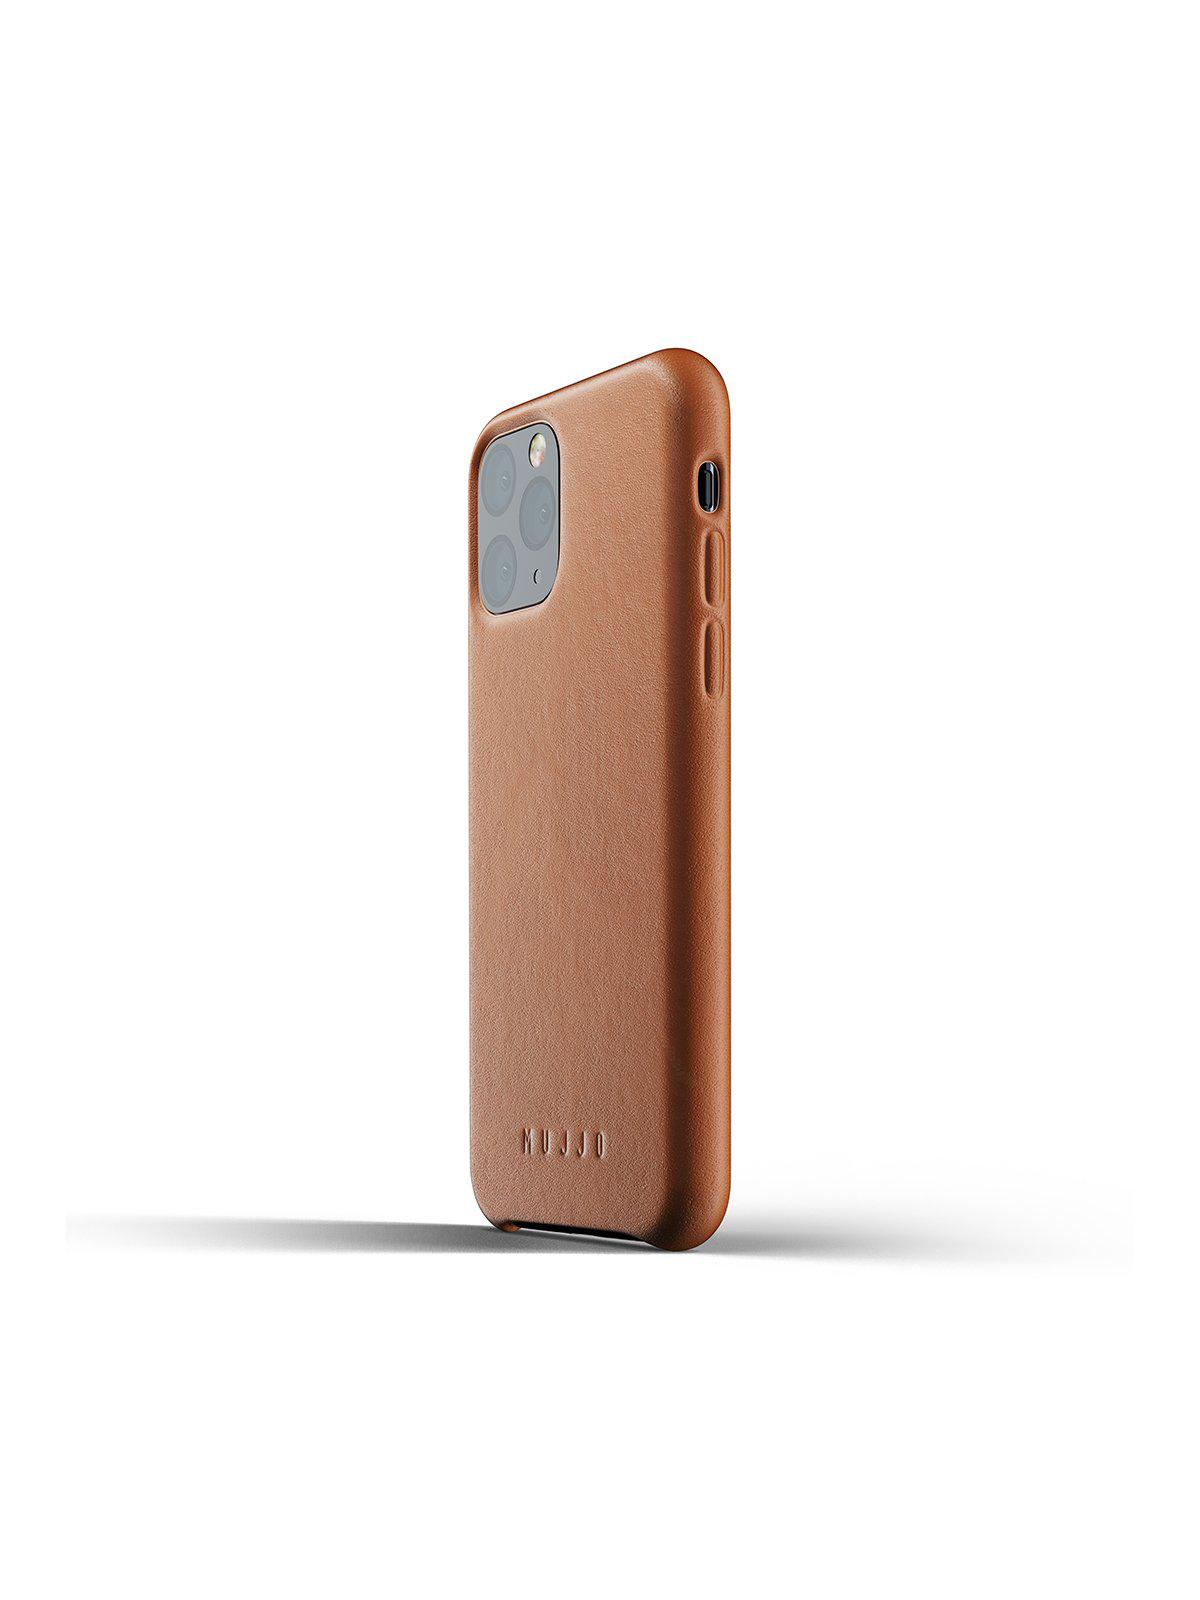 Mujjo Full Leather Case for iPhone 11 Pro Tan - MORE by Morello Indonesia